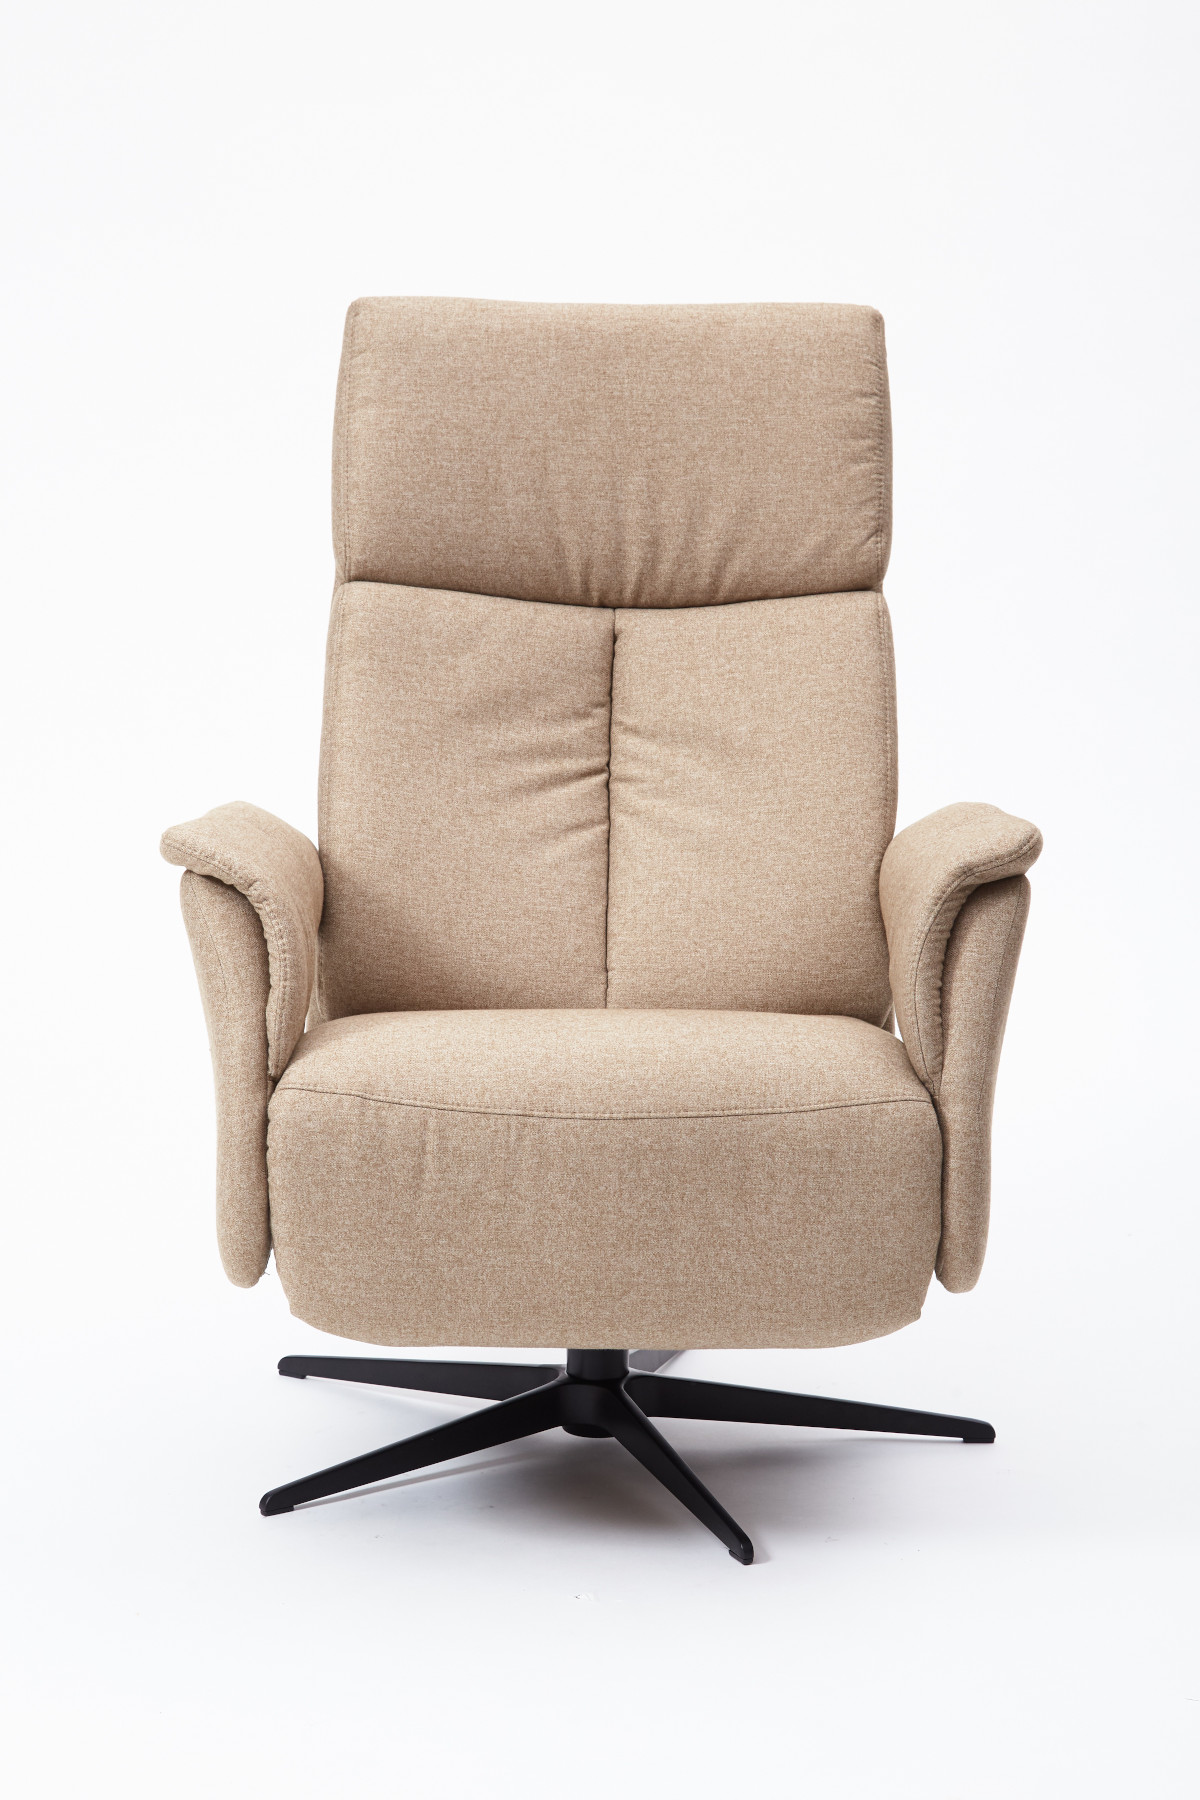 Lincoln Manual Swivel Recliner Chair